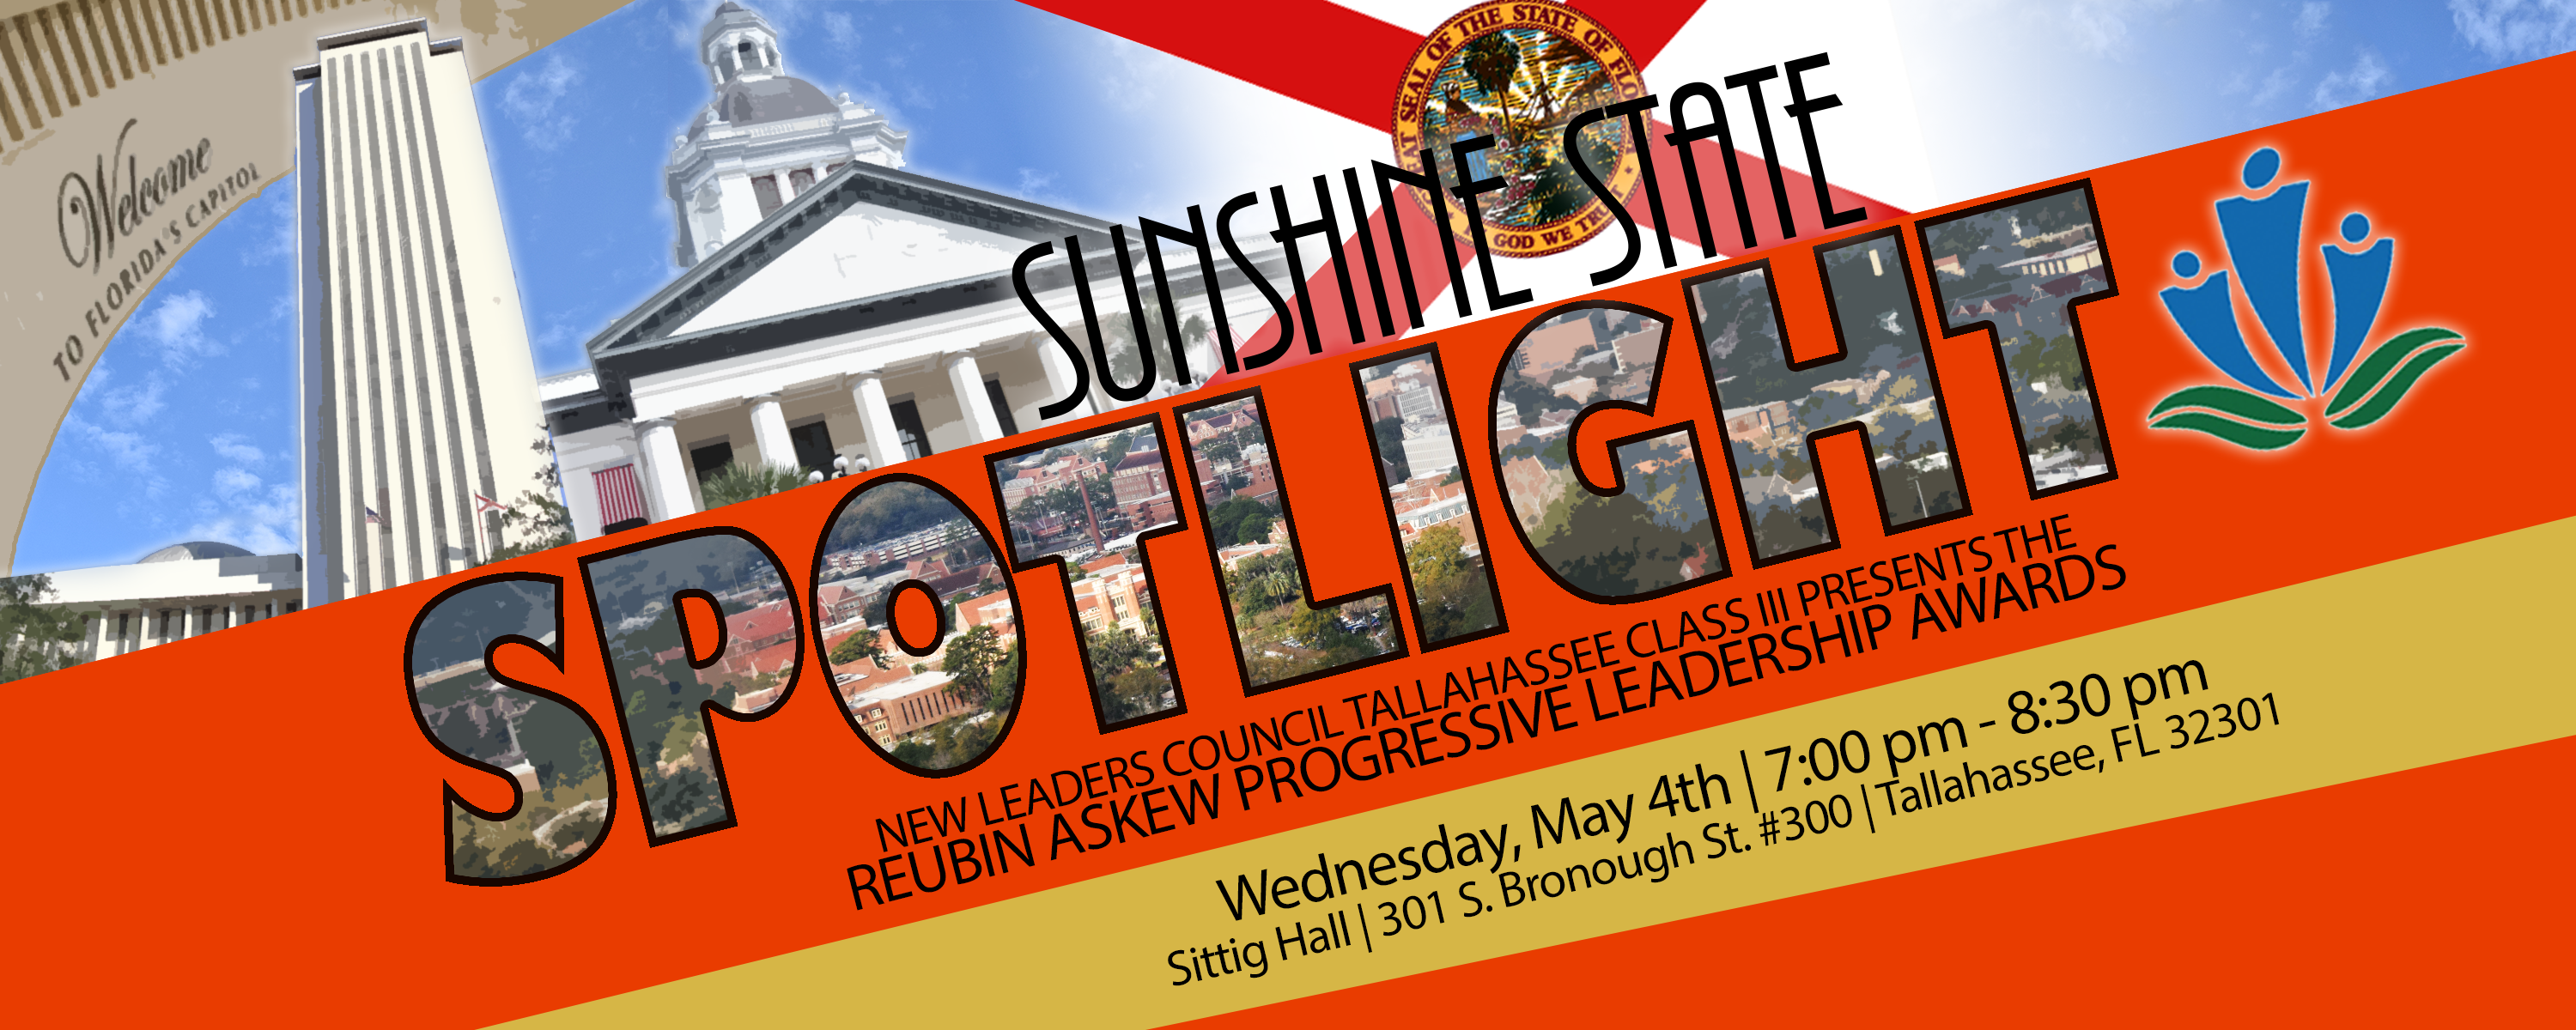 Sunshine State Spotlight banner includes photo of the Florida Capitol and state flag along with the NLC logo